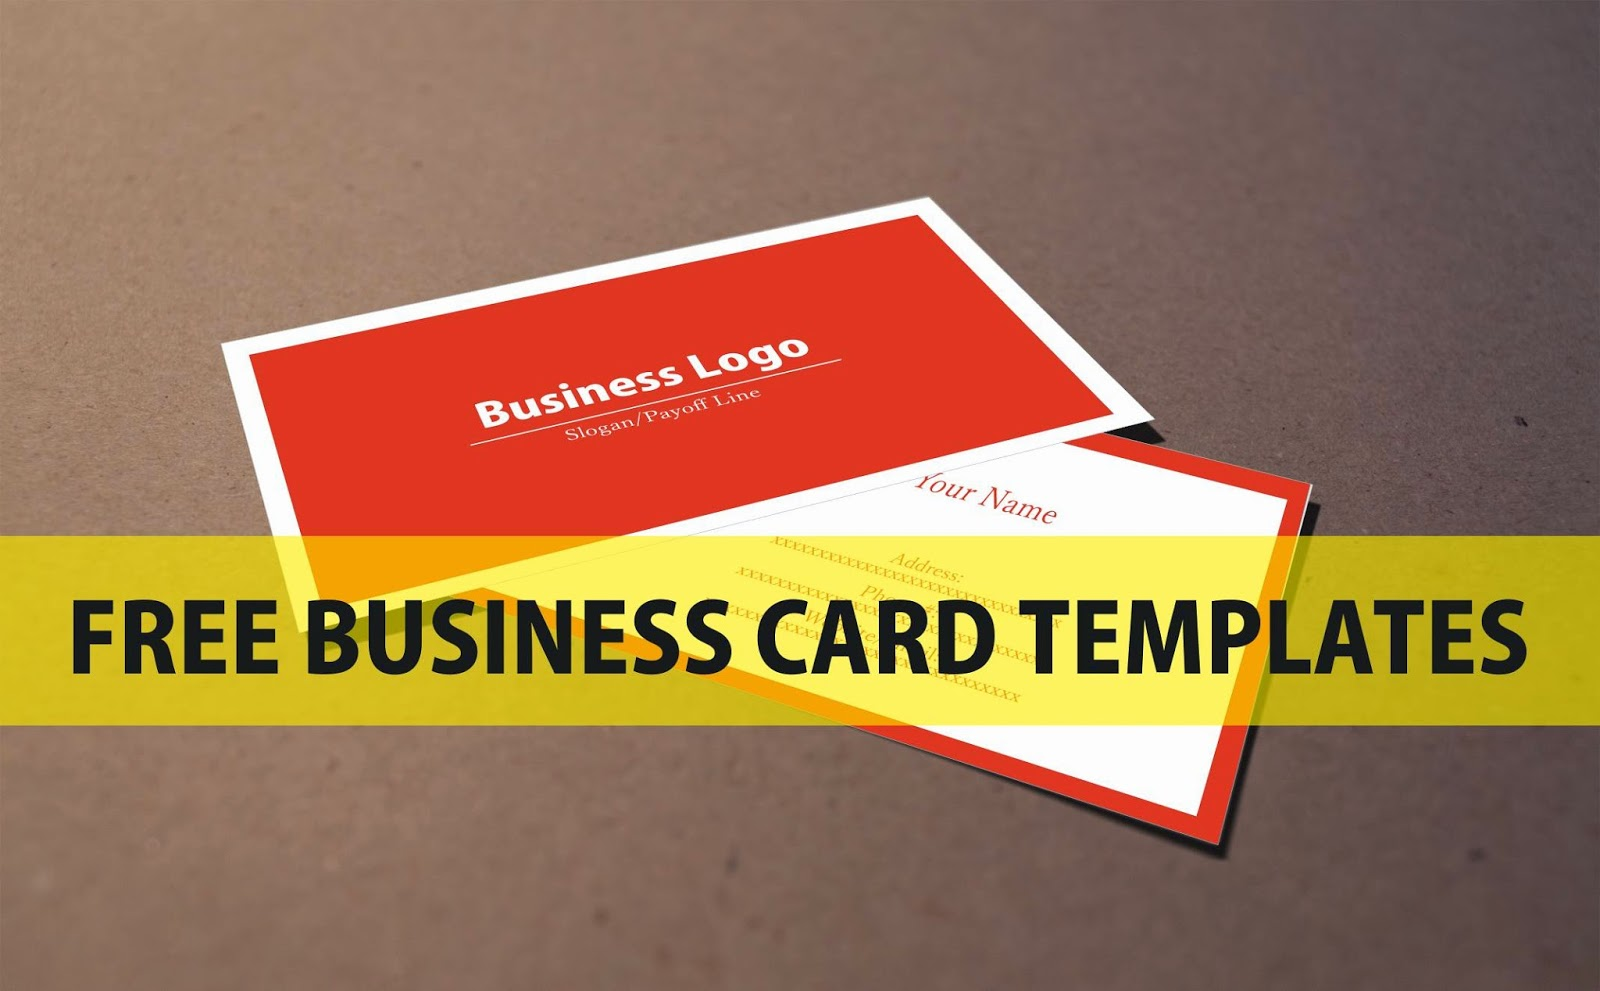 Free business card template download coreldraw file a graphic free business card template download coreldraw file flashek Image collections